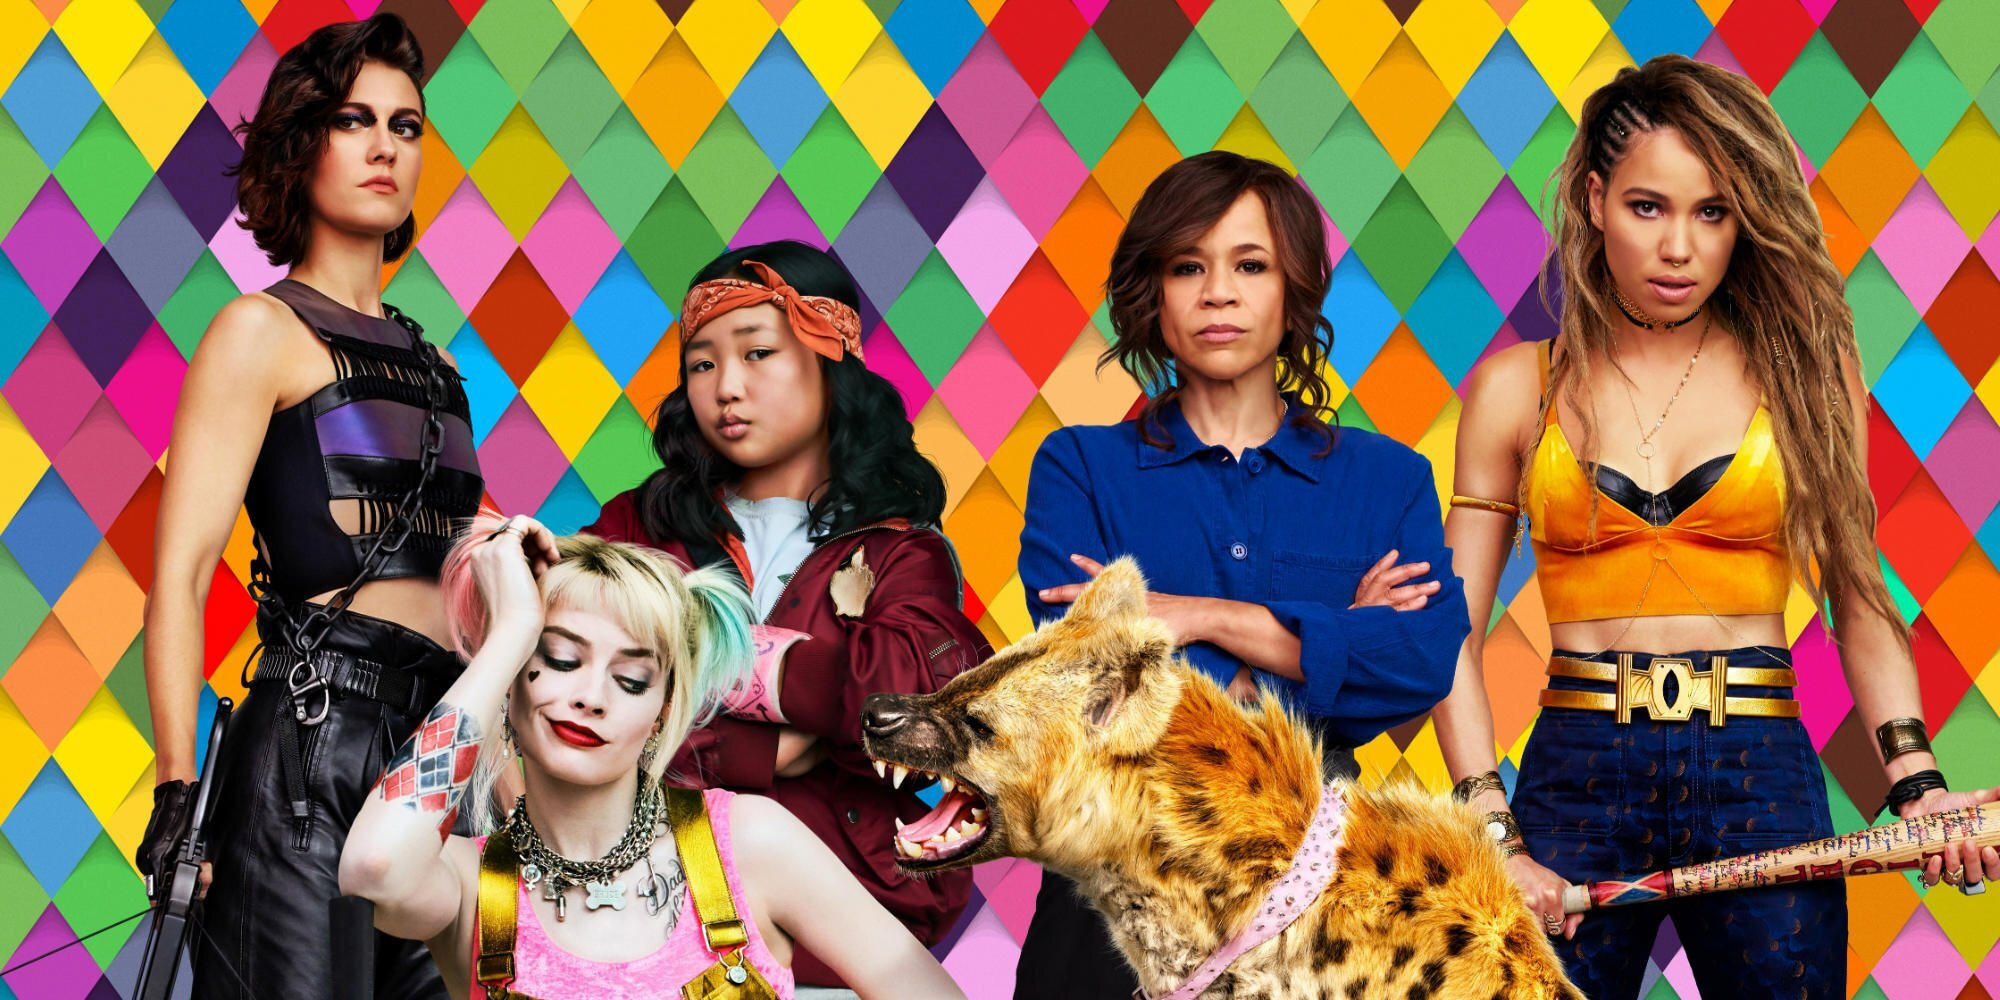 Birds Of Prey Enthuses With An Explosive And Empowering Female Fight Club A Review The Cultured Queers